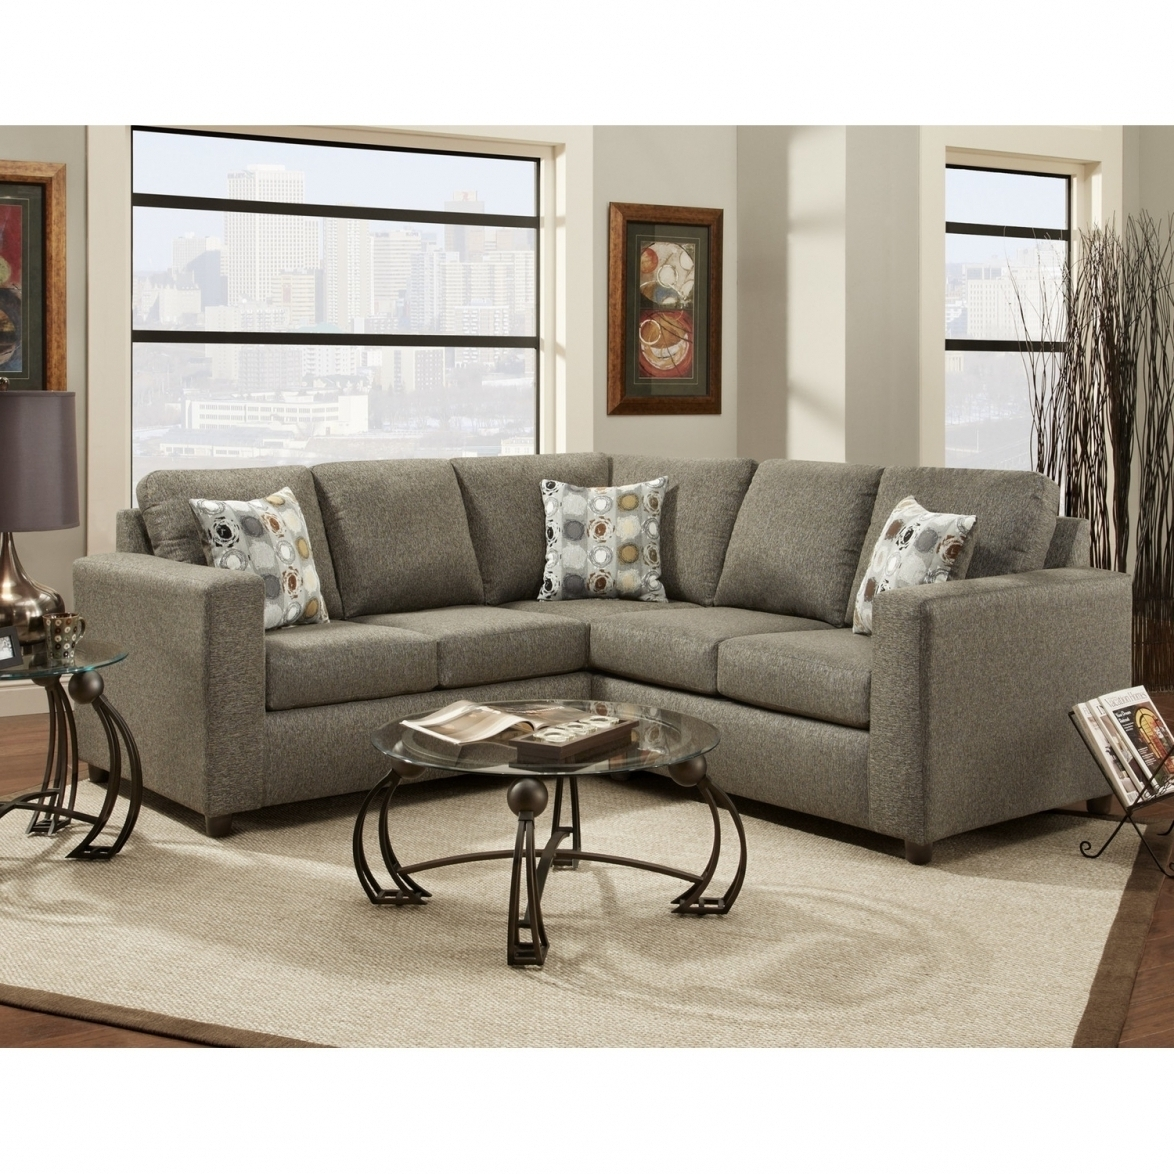 Most Popular Jacksonville Fl Sectional Sofas Within Photos Sectional Sofas Jacksonville Fl – Buildsimplehome (View 12 of 20)